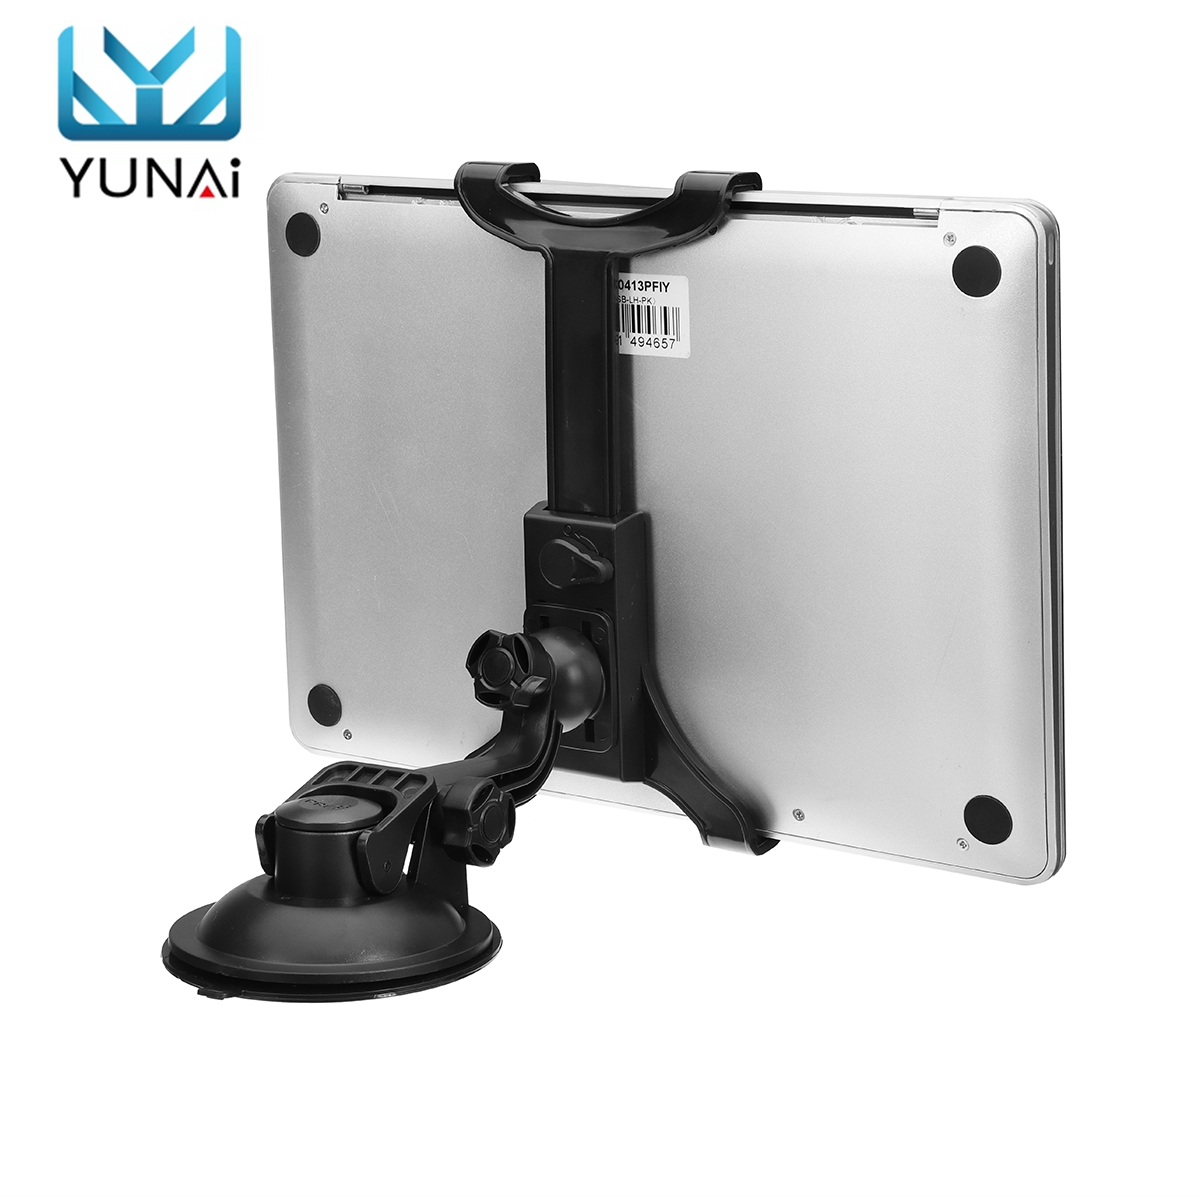 Car Windshield Suction Mount Holder Stand For ipad Galaxy Tab Tablet PC 7-11inch